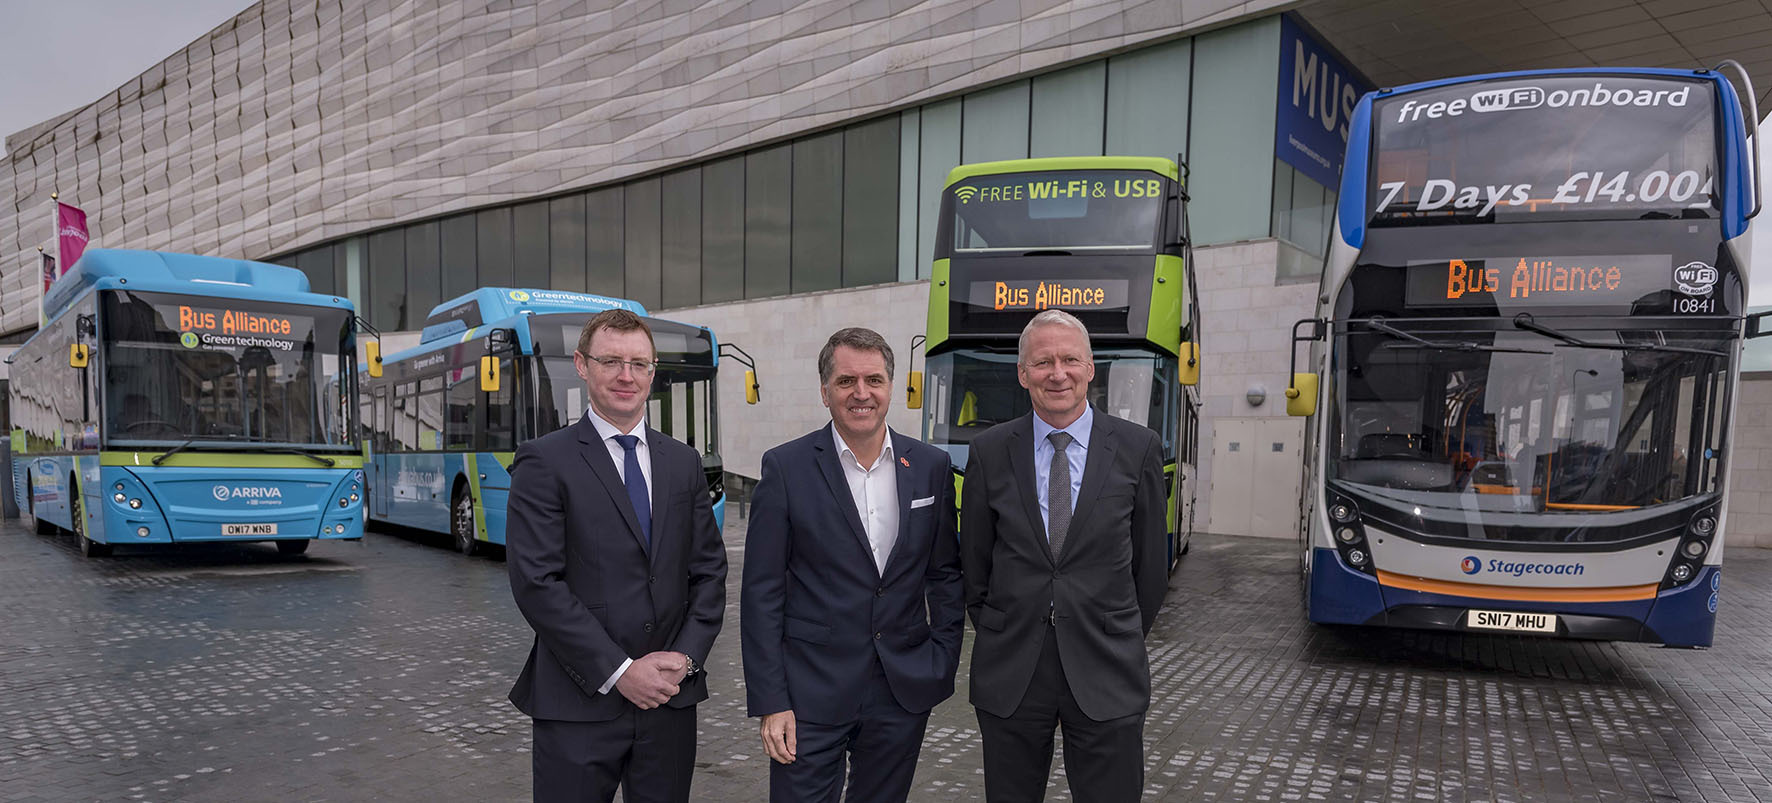 Liverpool City Bus Alliance at Mann Island. (Picture: Merseytravel)